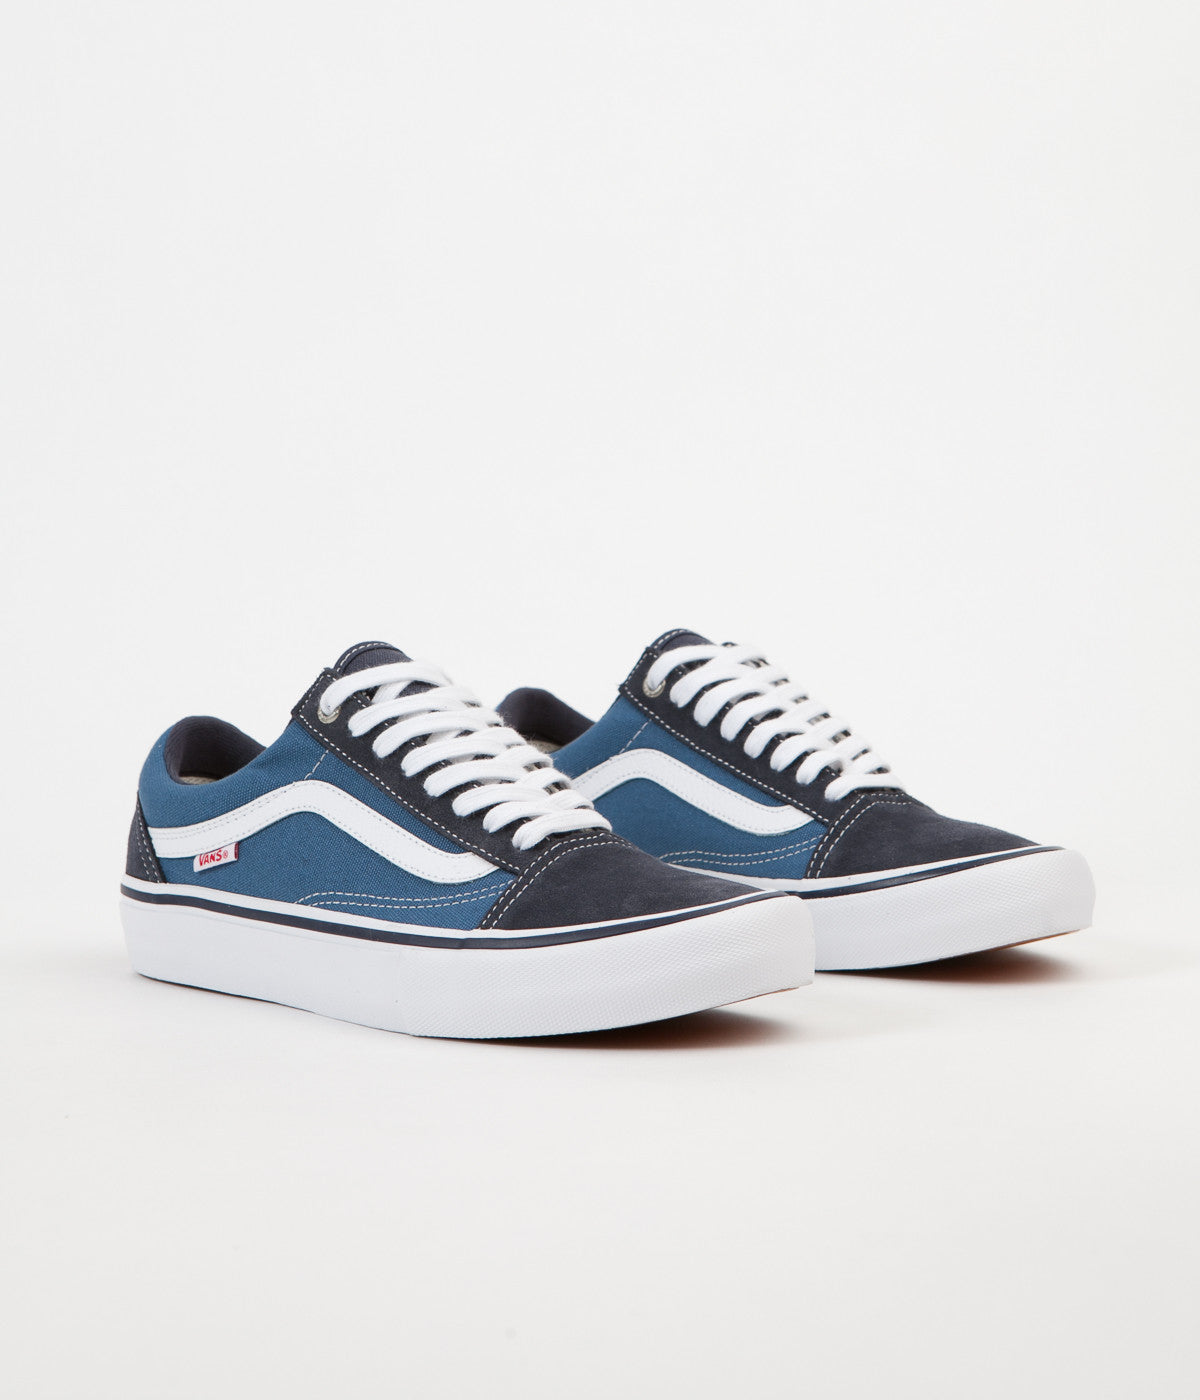 Vans Old Skool Pro Shoes - Navy / STV Navy / White